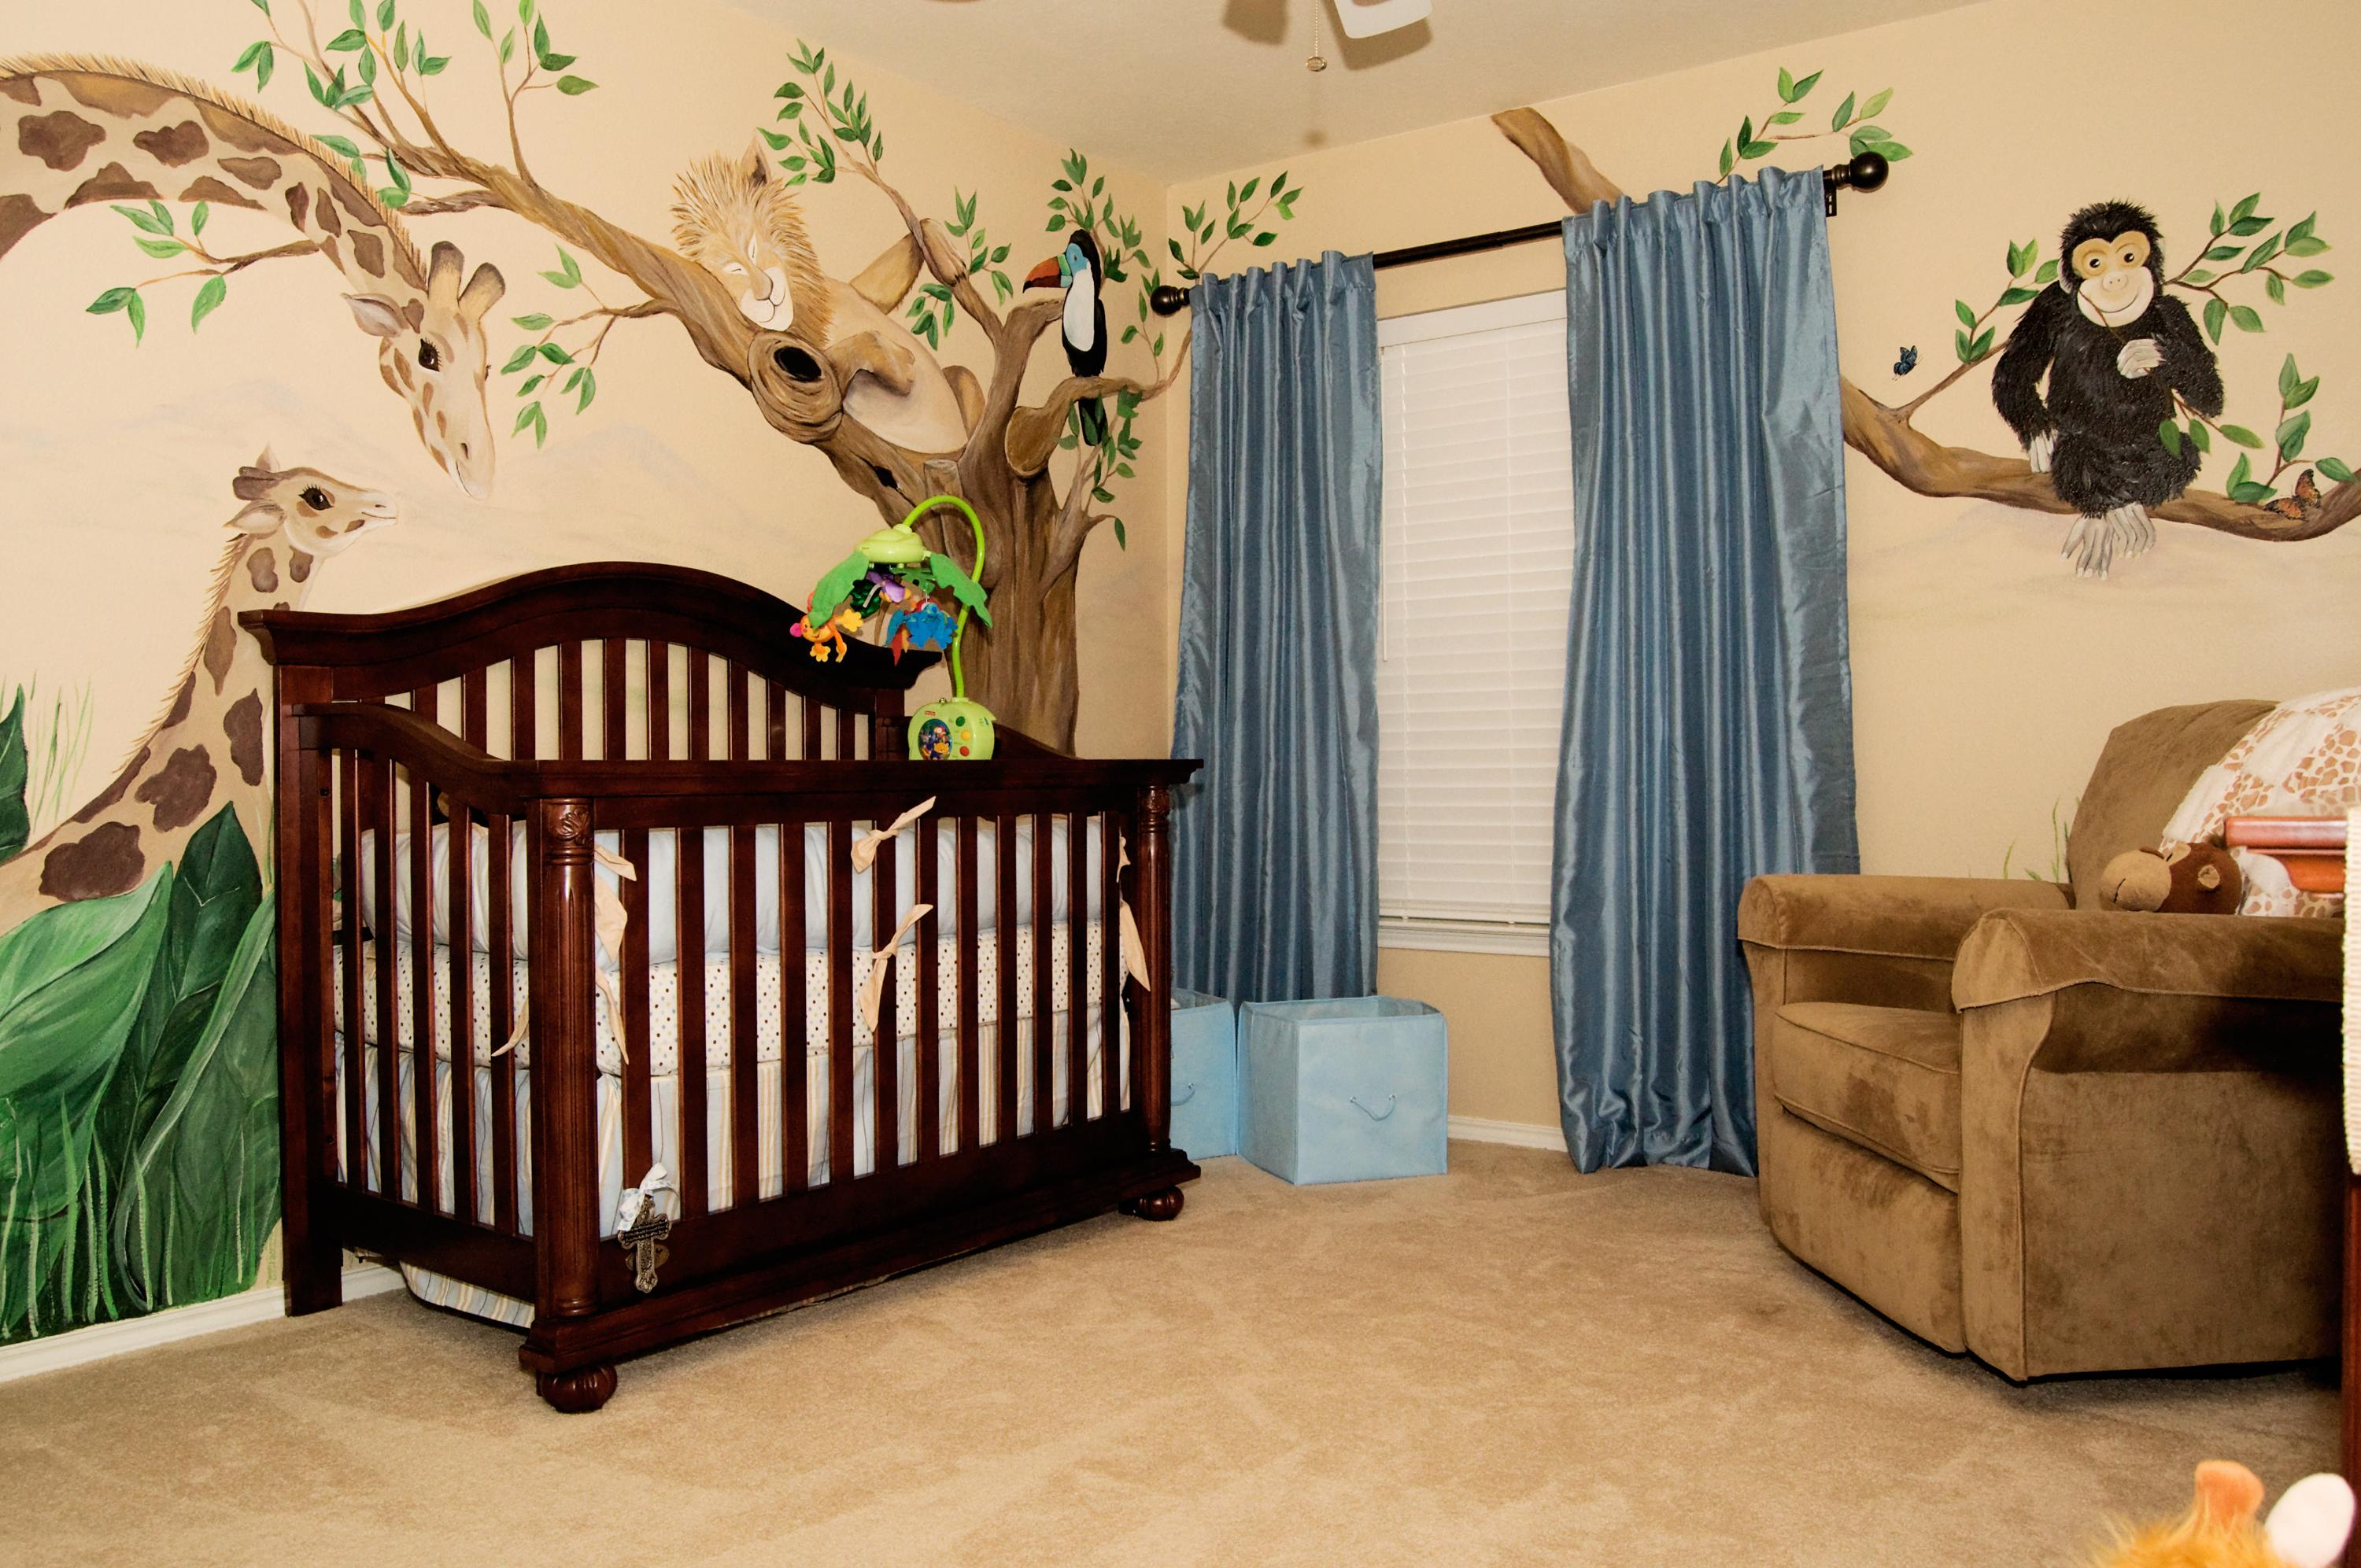 Baby cribs stores - Animal Giraffe Baby Boy Theme Of Bed With Black Wood Crib And Blue Curtain Near Recliner